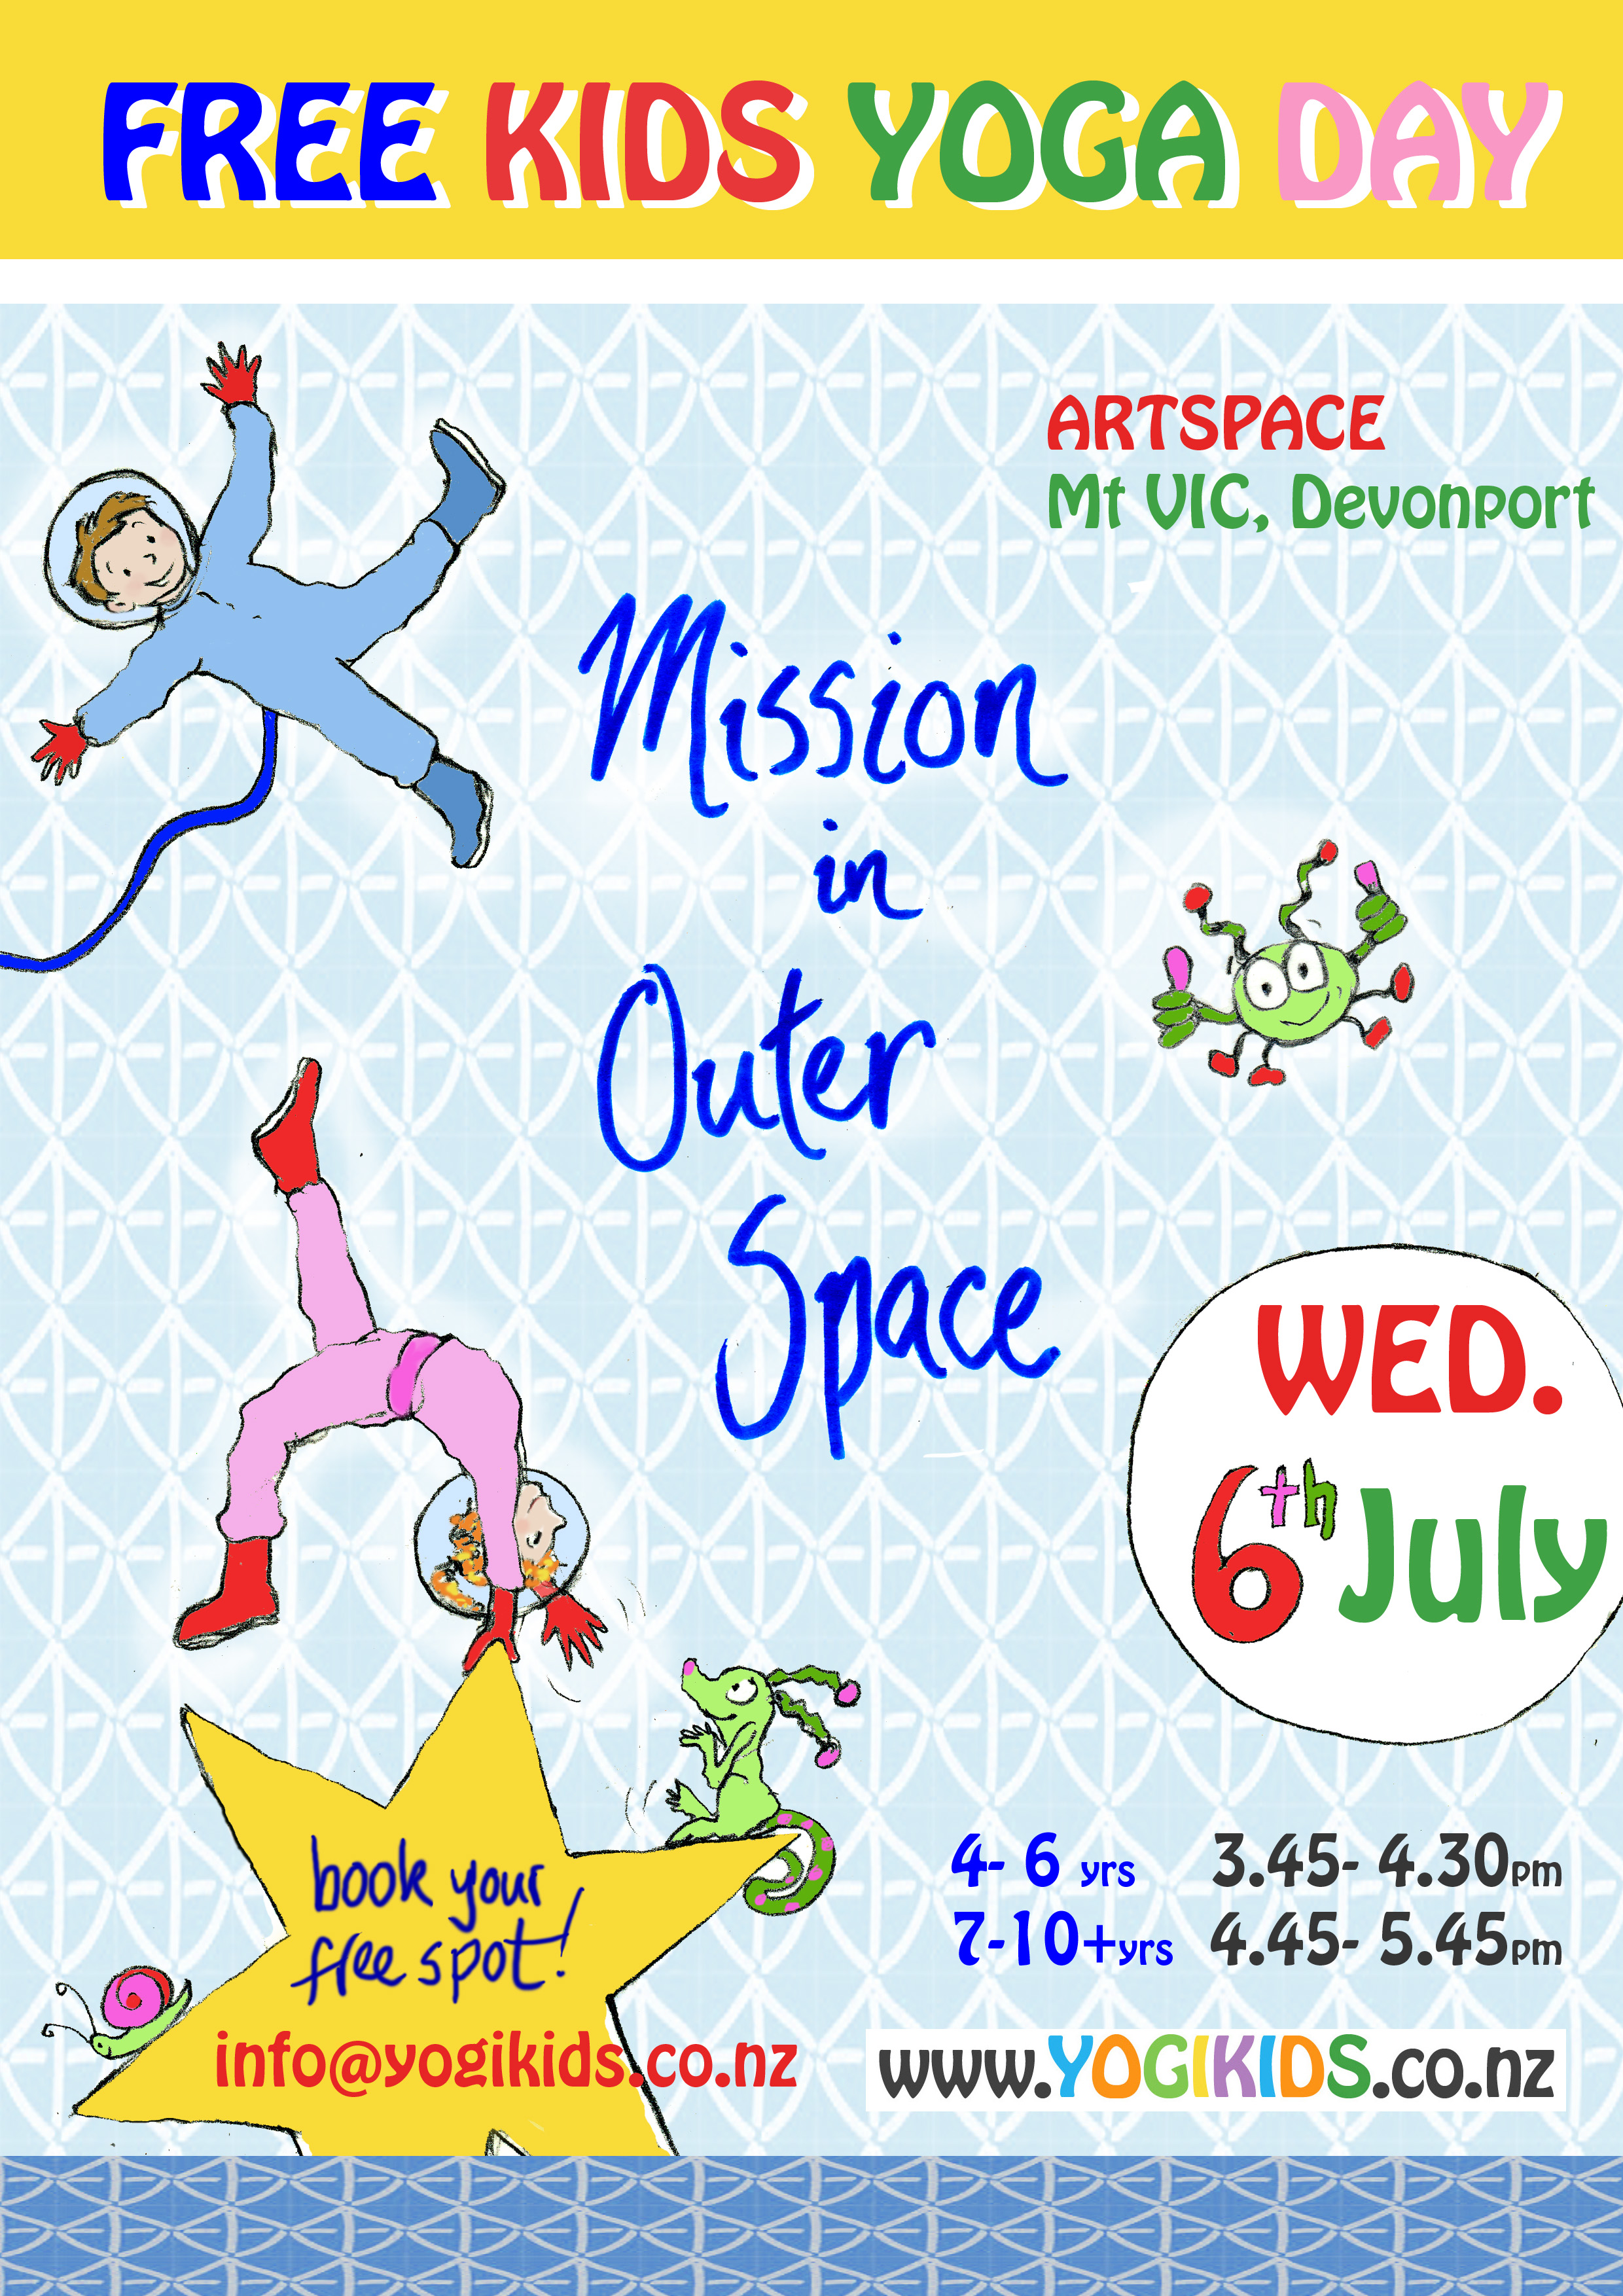 free kids yoga class mission in outer space - Free Images Kids